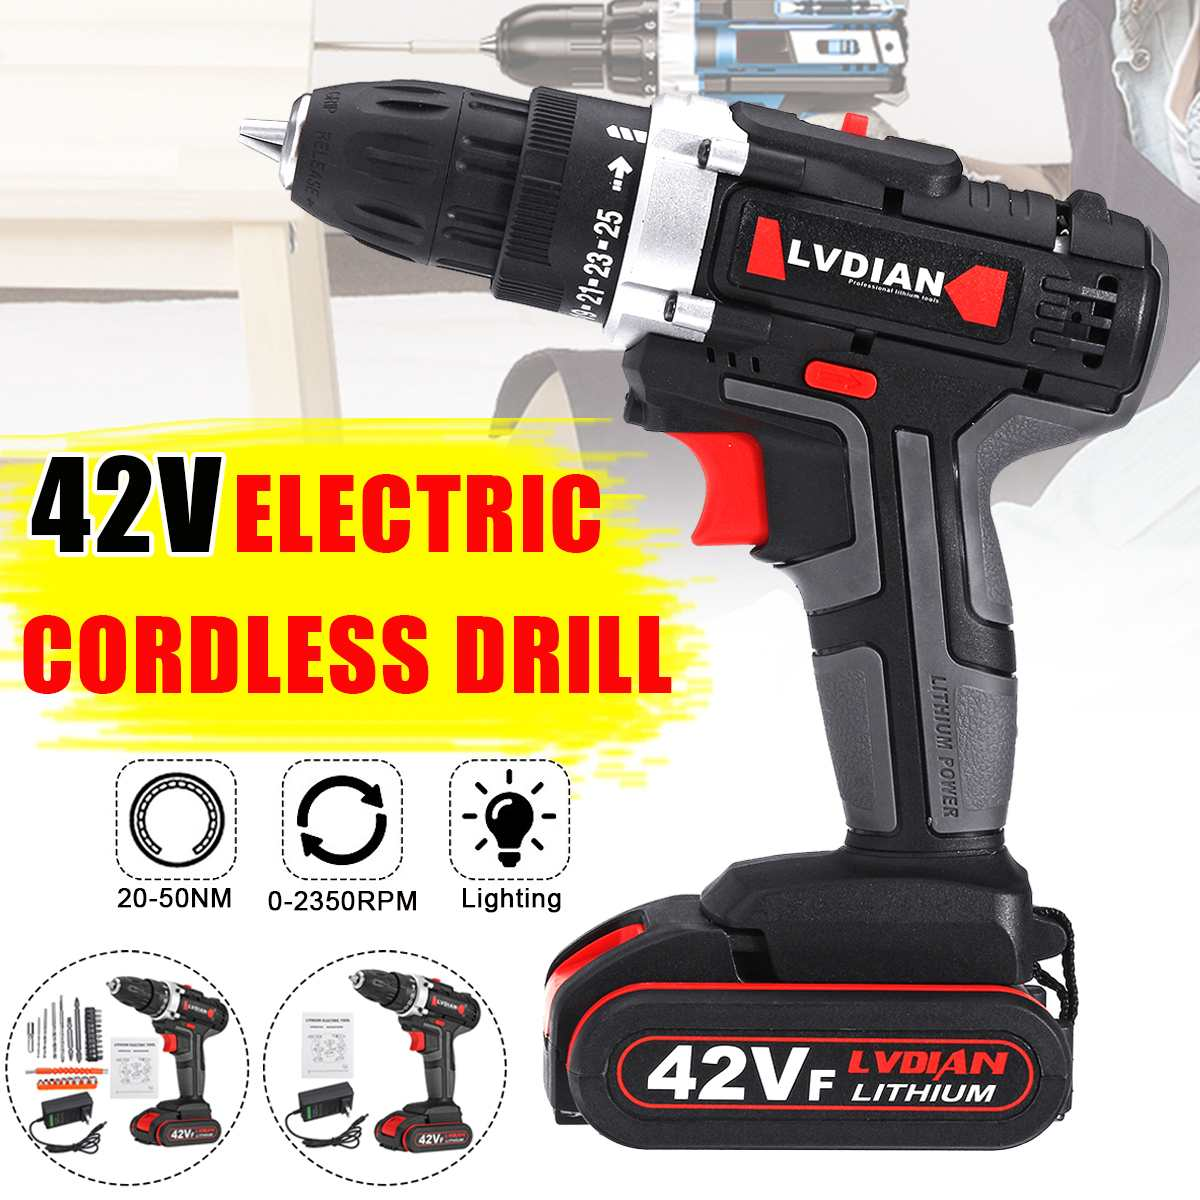 42V Cordless Impact Drill Driver Li-Ion Battery Electric Screwdriver LED Light